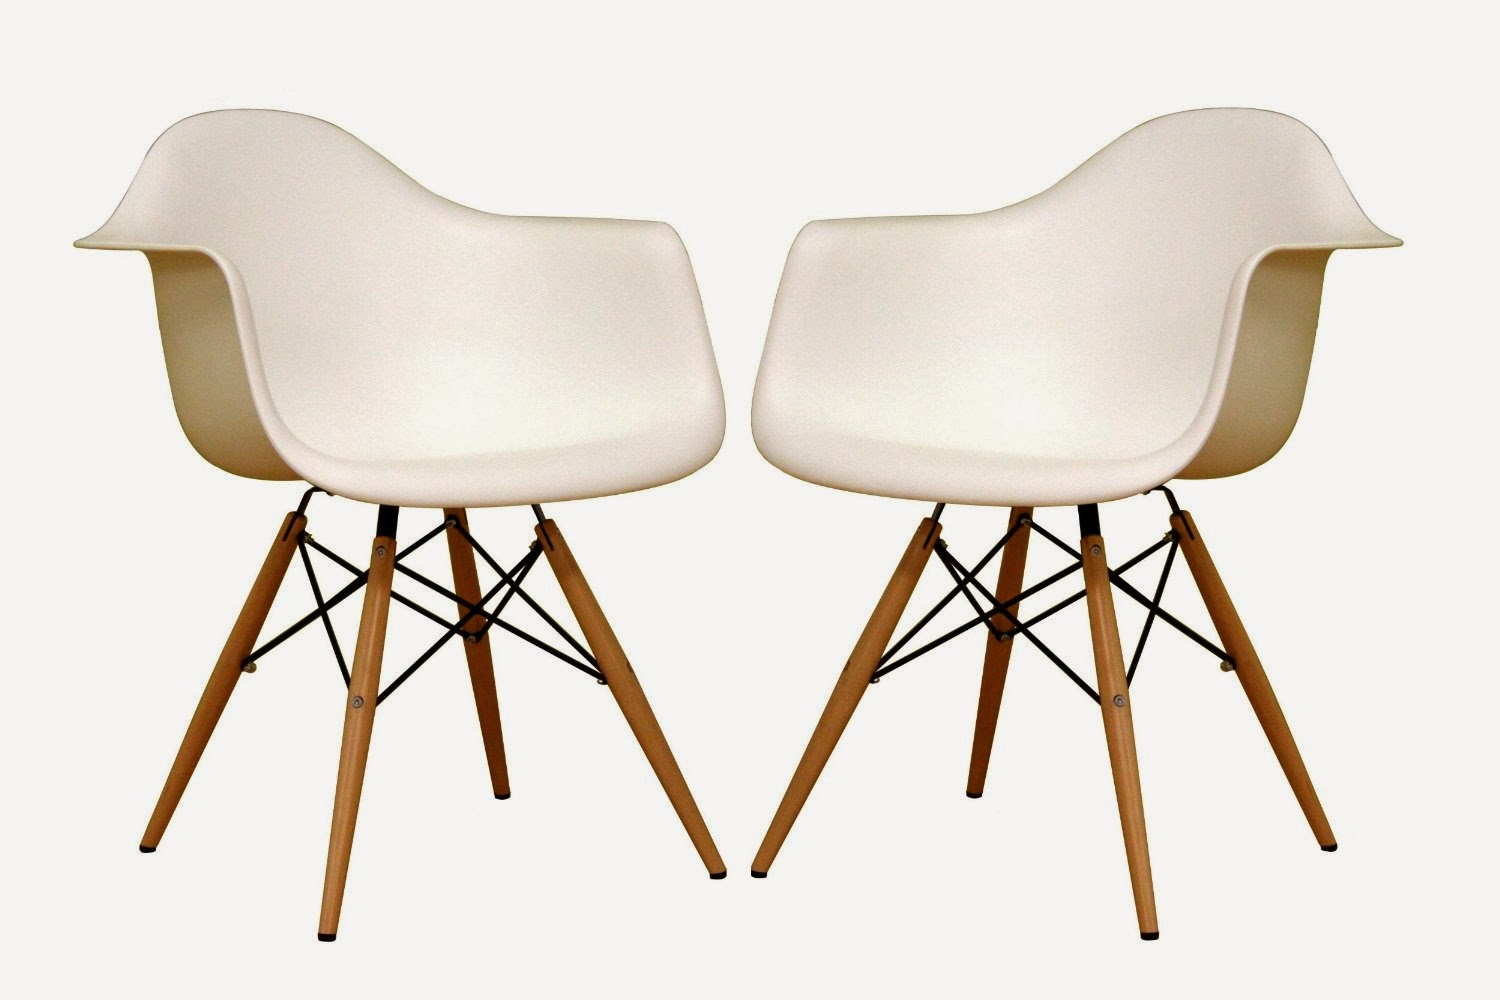 Hmh designs mcm eiffel chairs Furniture wooden legs